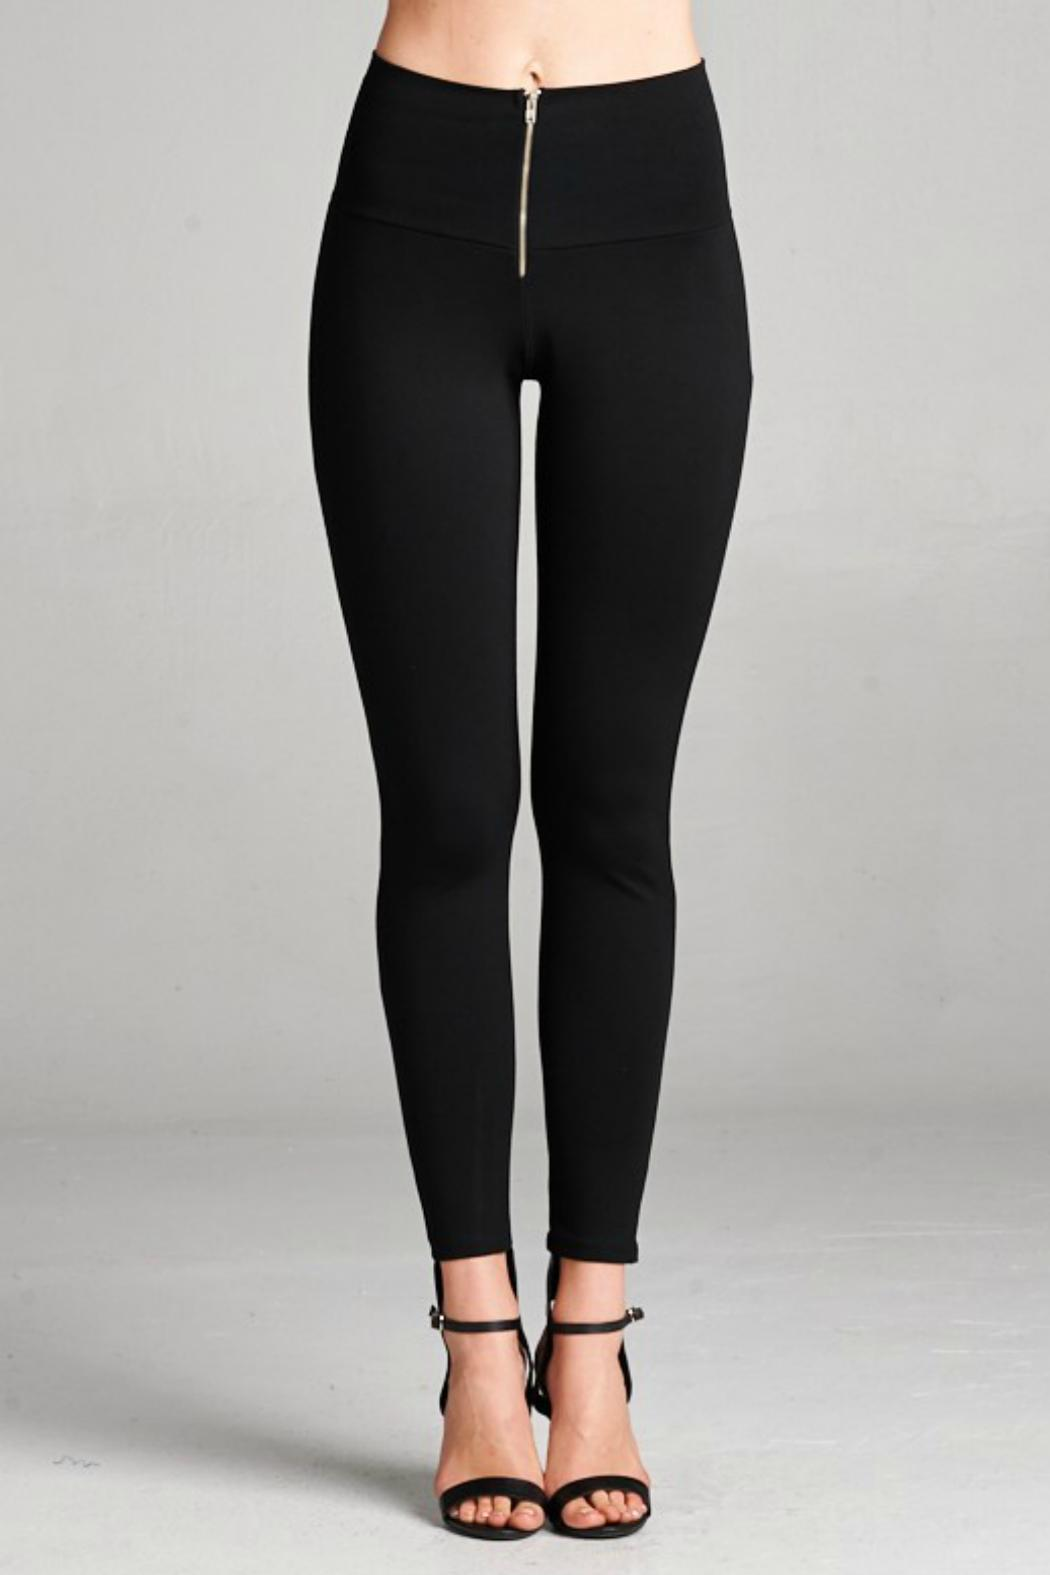 Honey Punch Casual Front-Zipper Leggings - Front Cropped Image